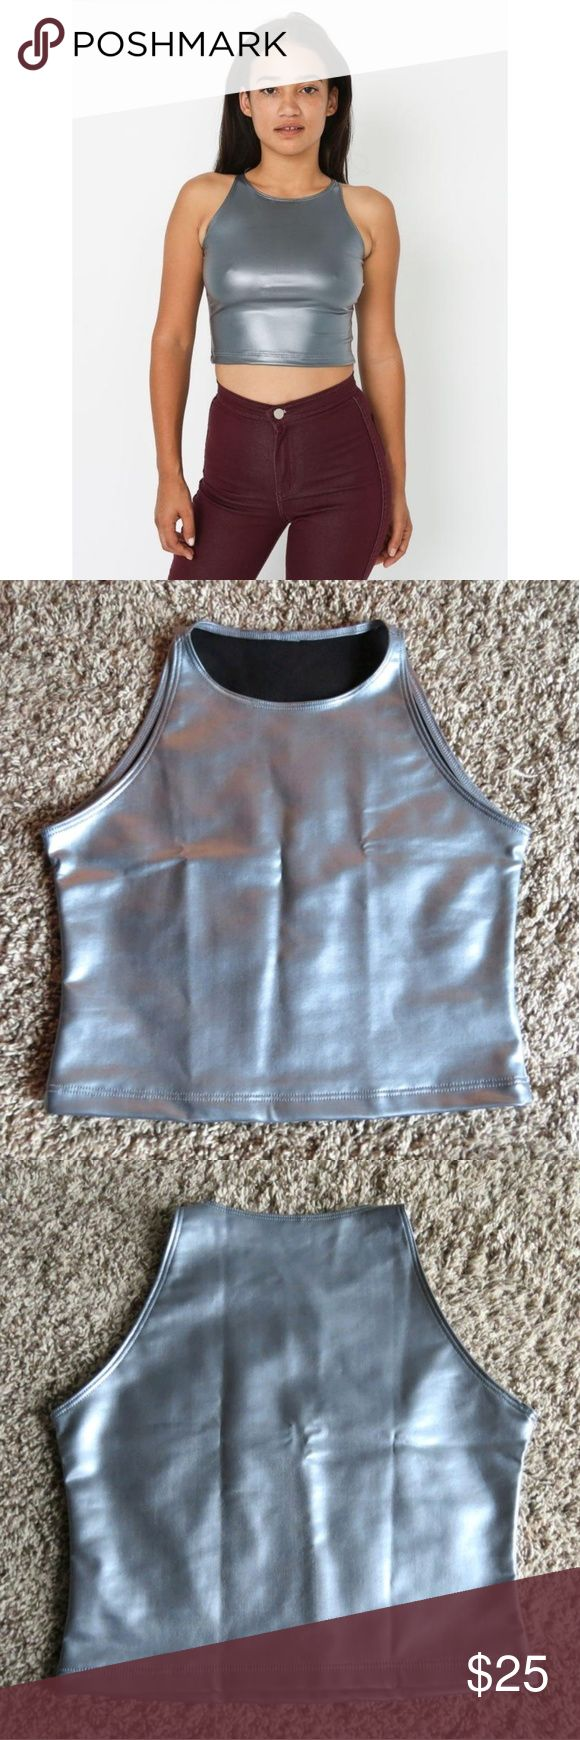 NWOT AA Silver Crop Top No trades! Awesome high neck sleeveless silver metallic crop top by American Apparel. Tight fitting but stretchy. NWOT never worn. Size M. American Apparel Tops Crop Tops